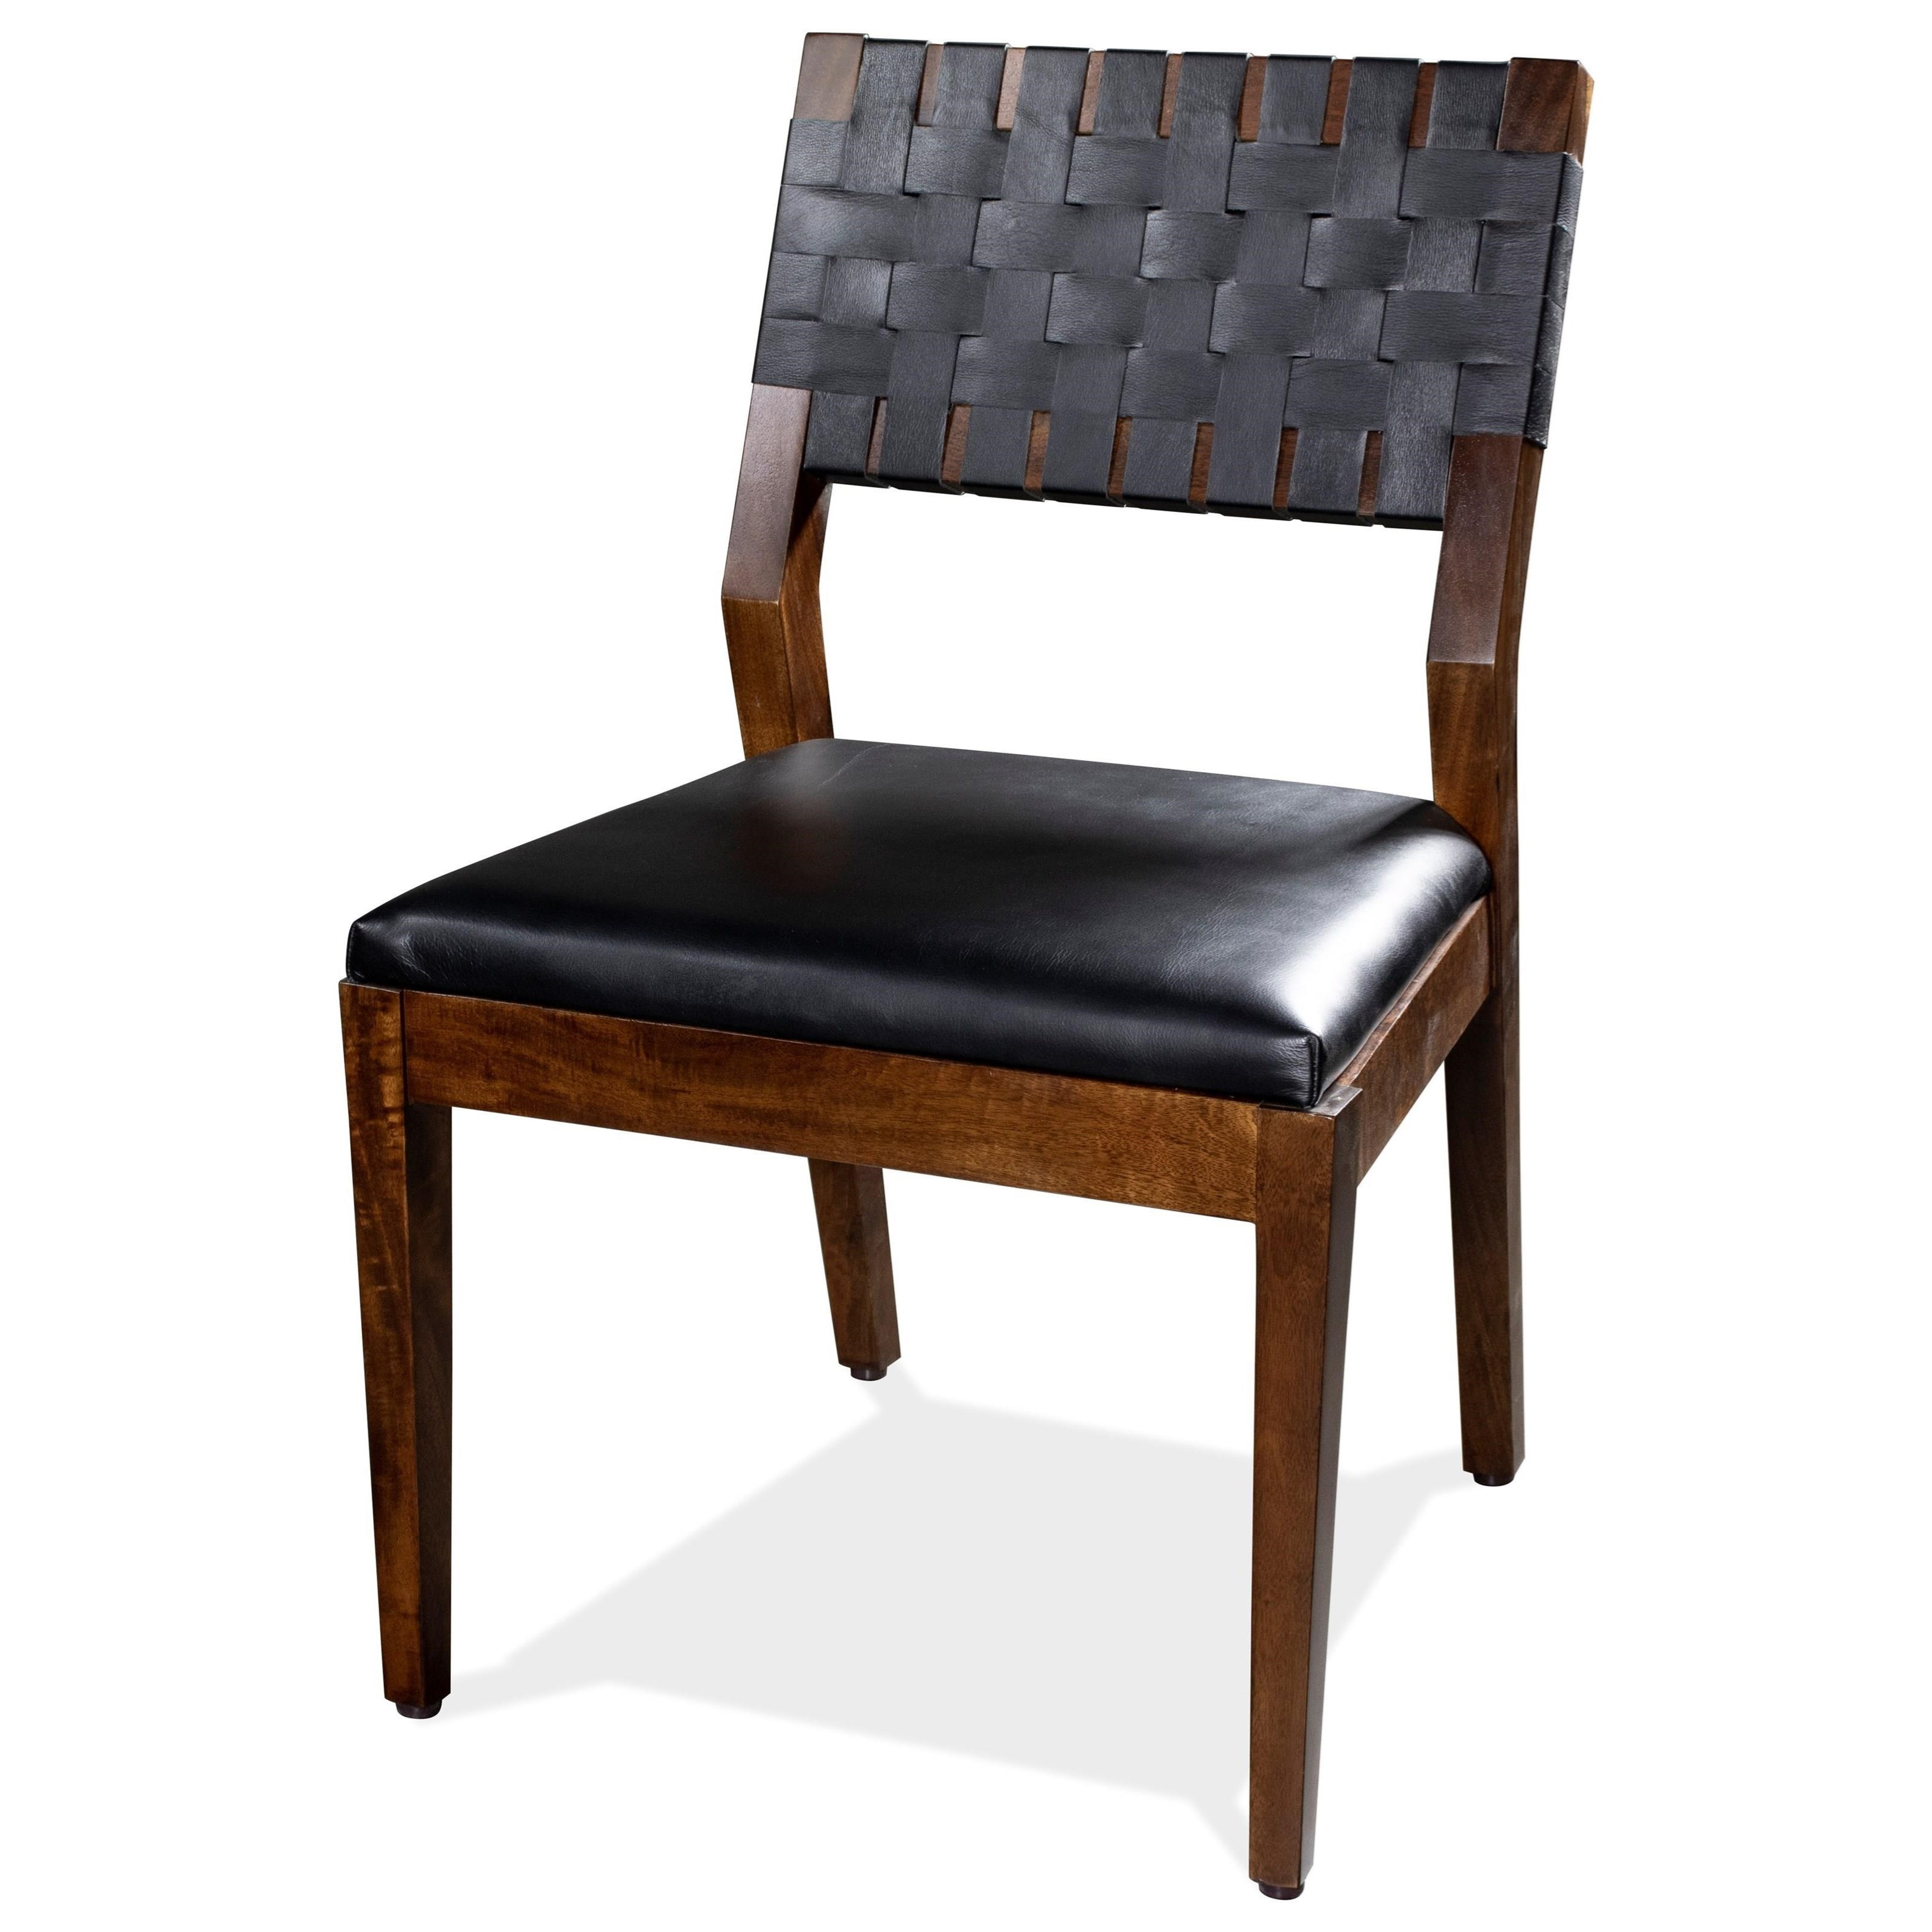 Mix-N-Match Chairs Wvn-Bk Uph Side Chair 2in by Riverside Furniture at Zak's Home